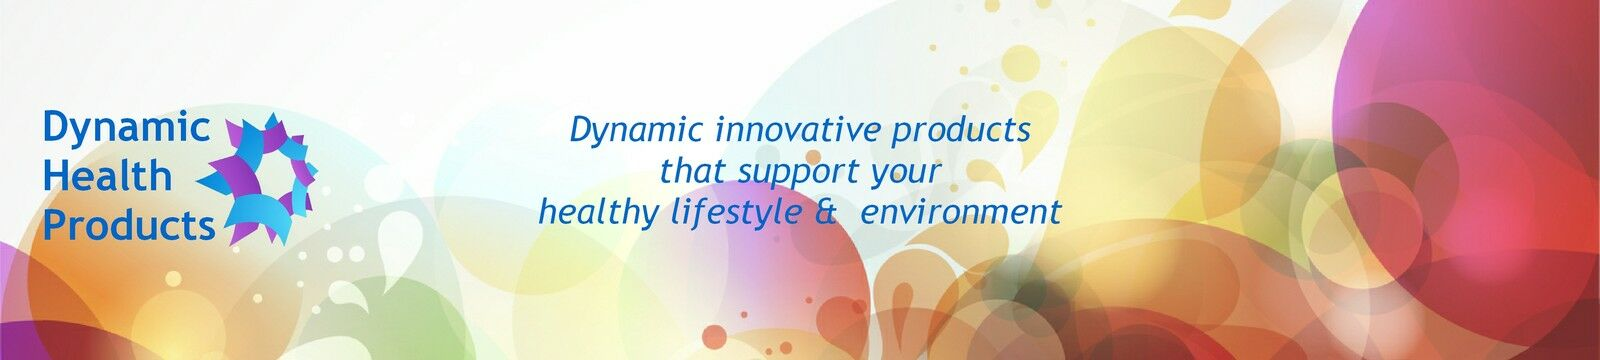 Dynamic Health Products